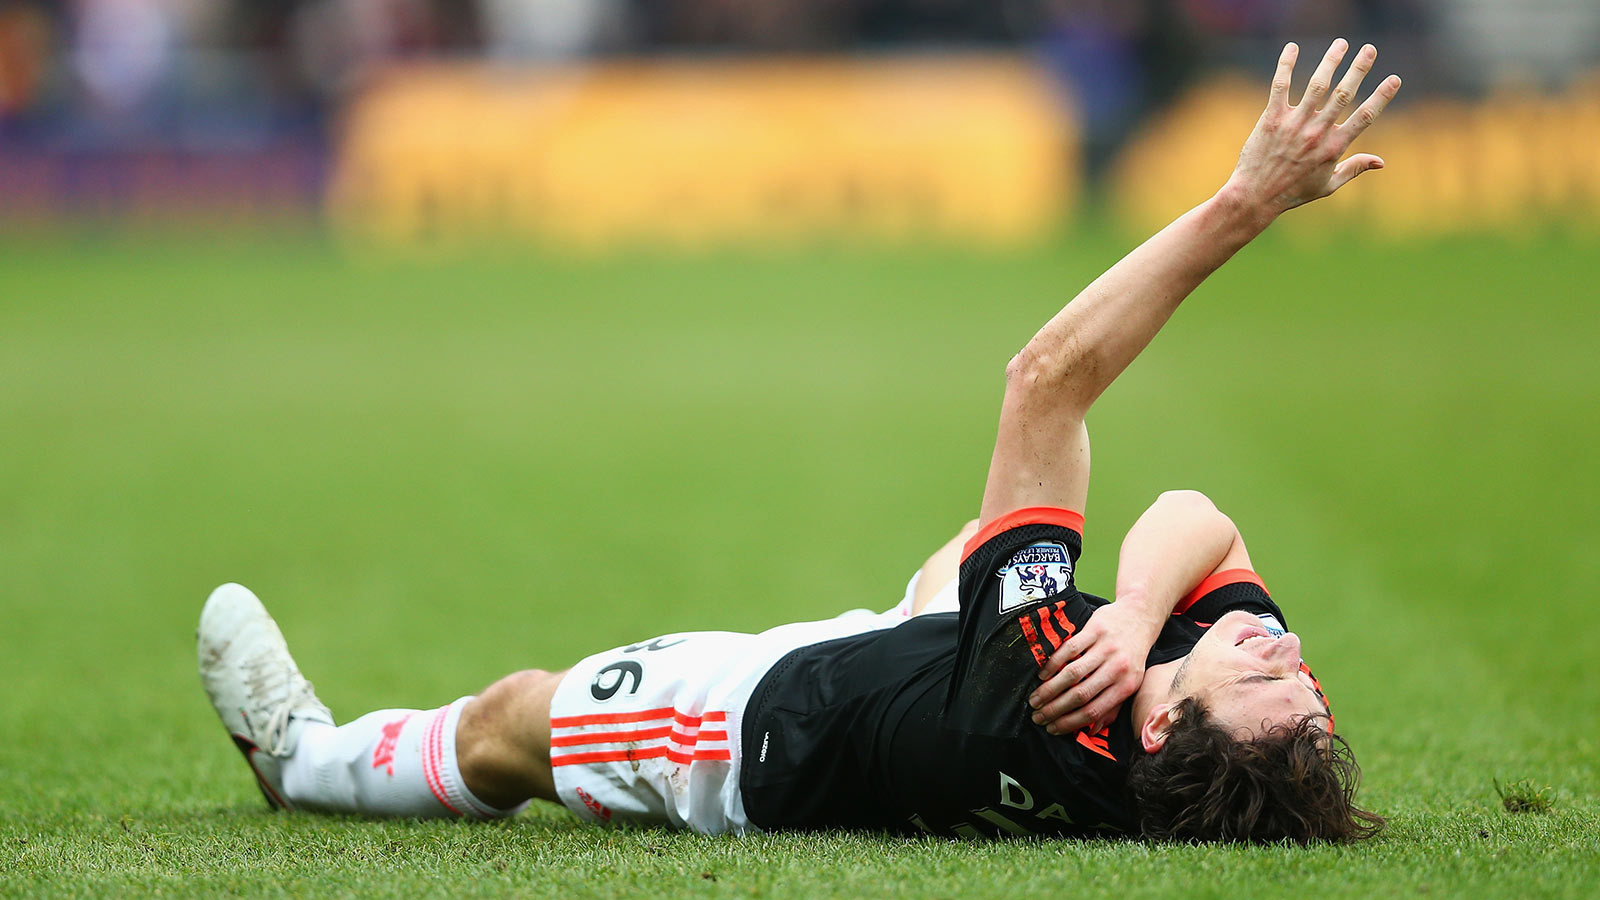 Manchester United full-back Darmian dislocates shoulder